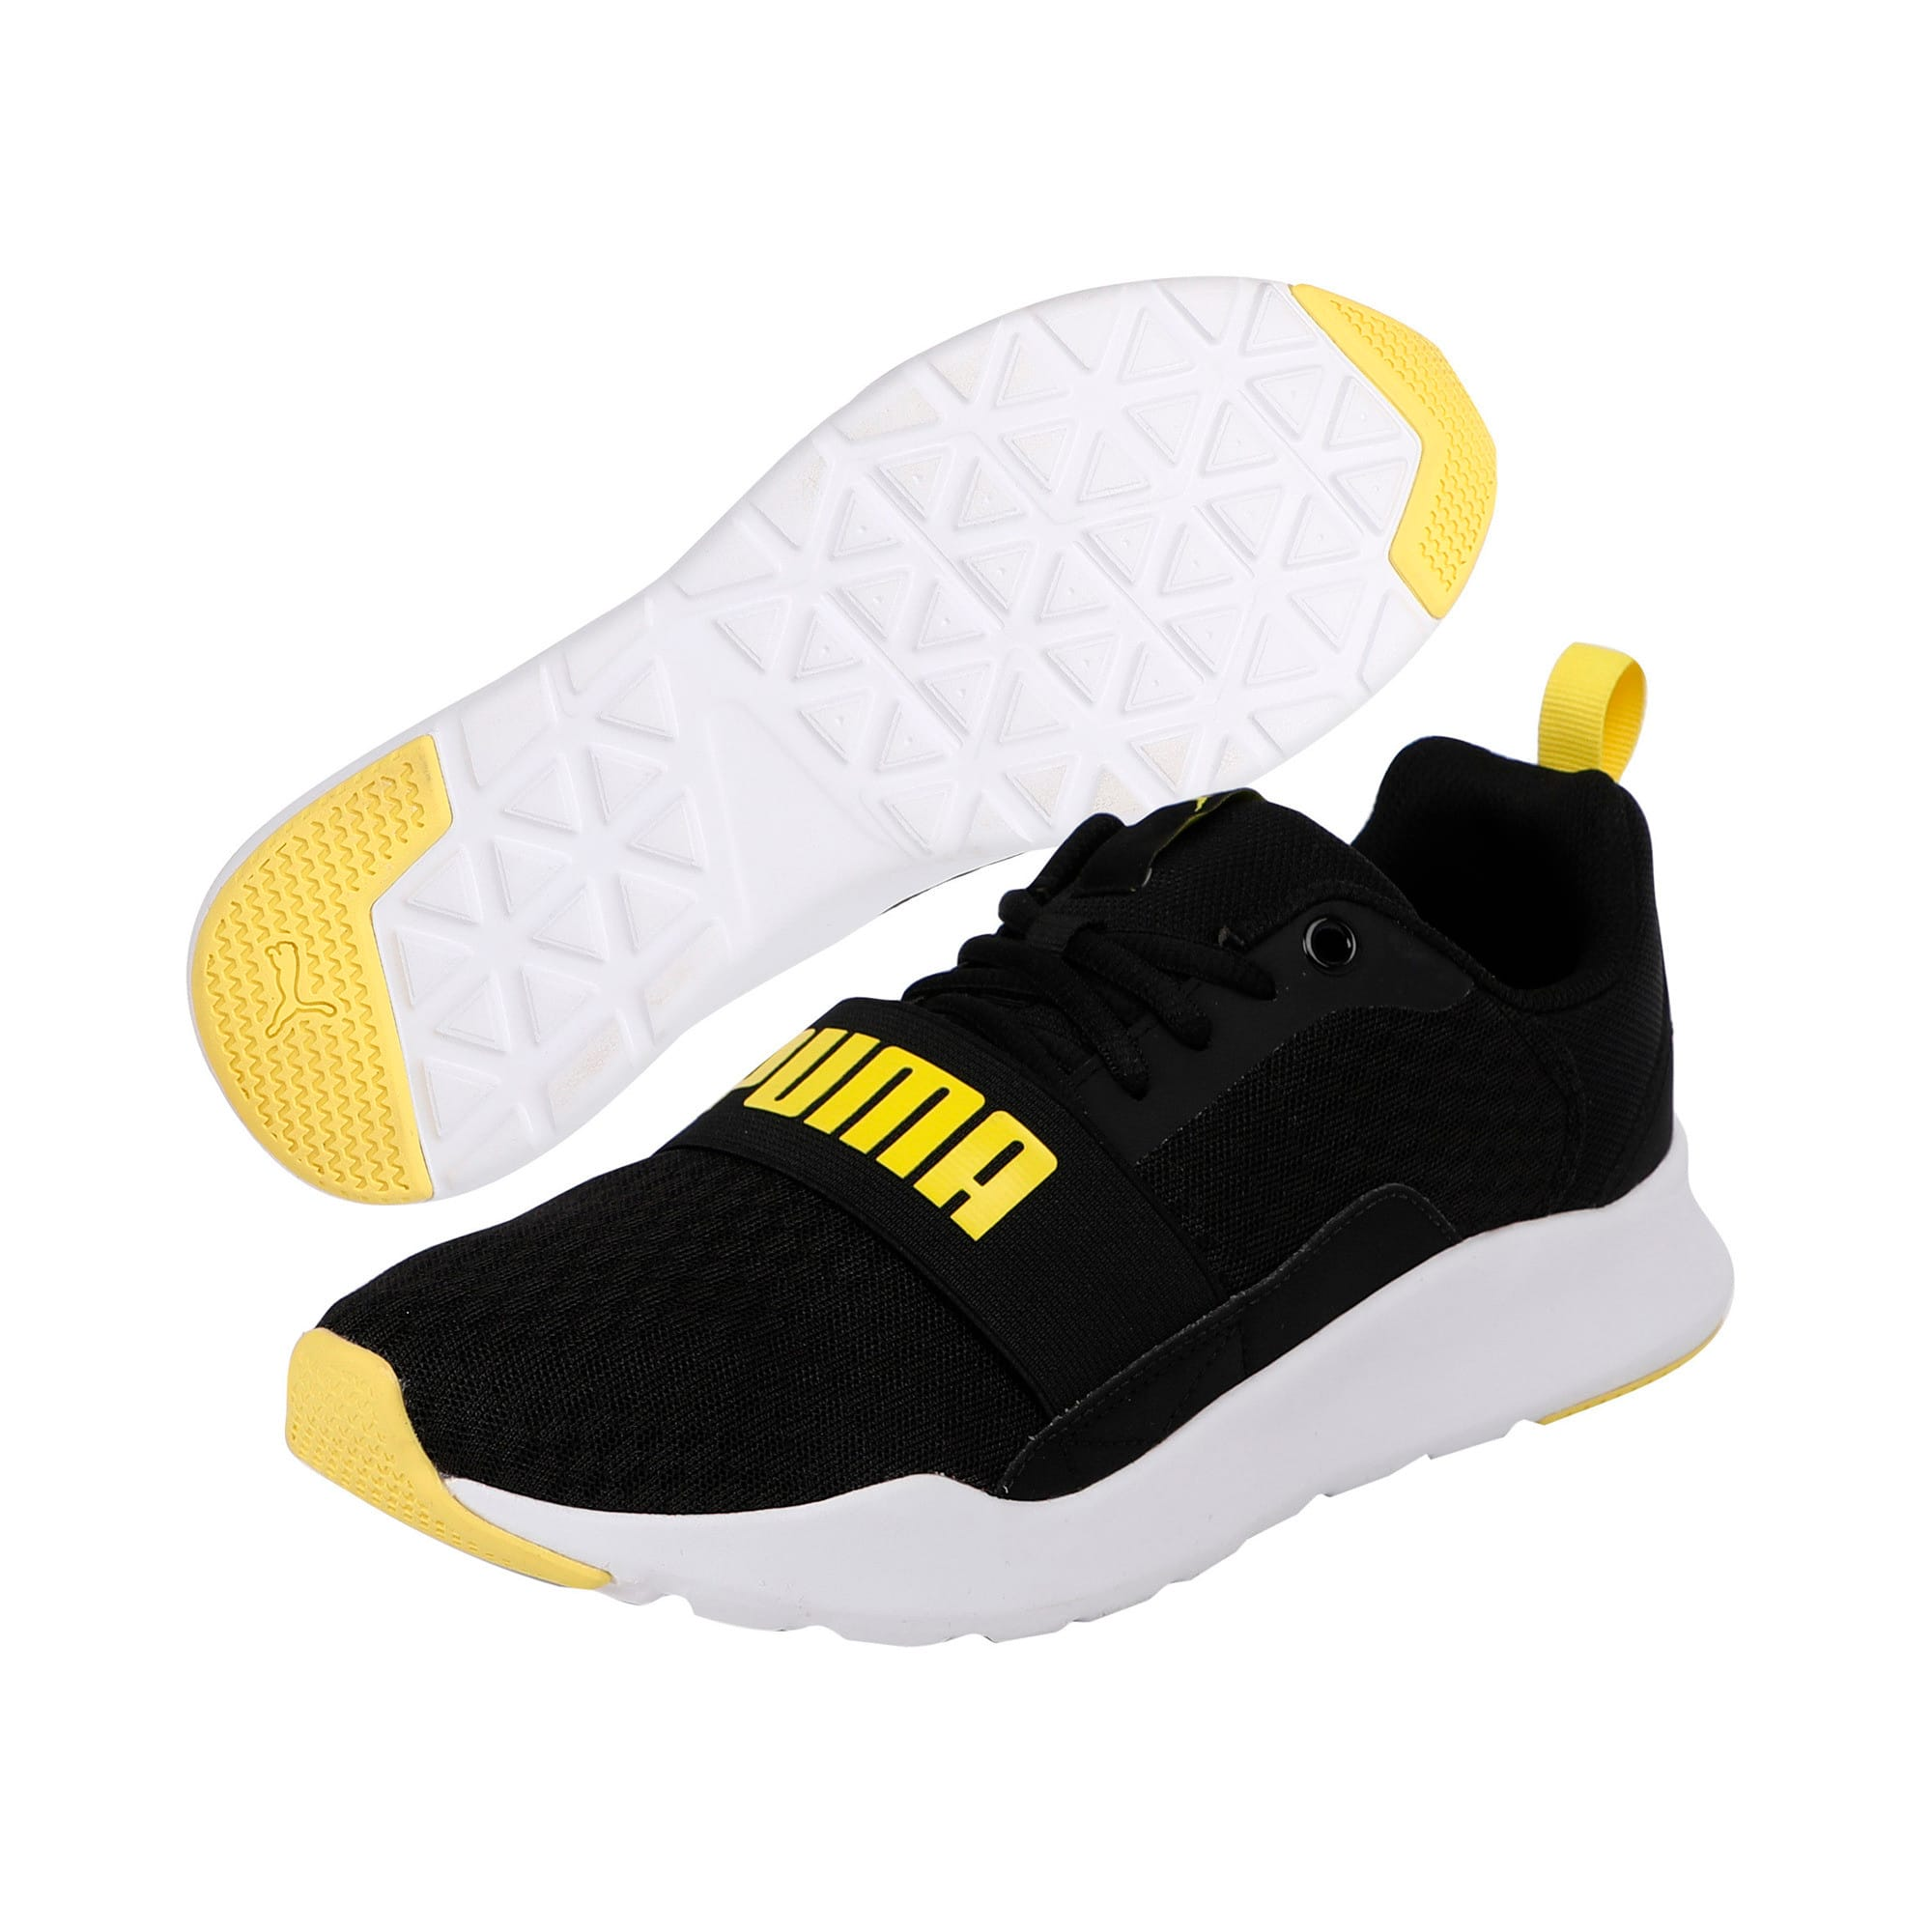 Thumbnail 2 of Wired Trainers, Puma Black-Blazing Yellow, medium-IND